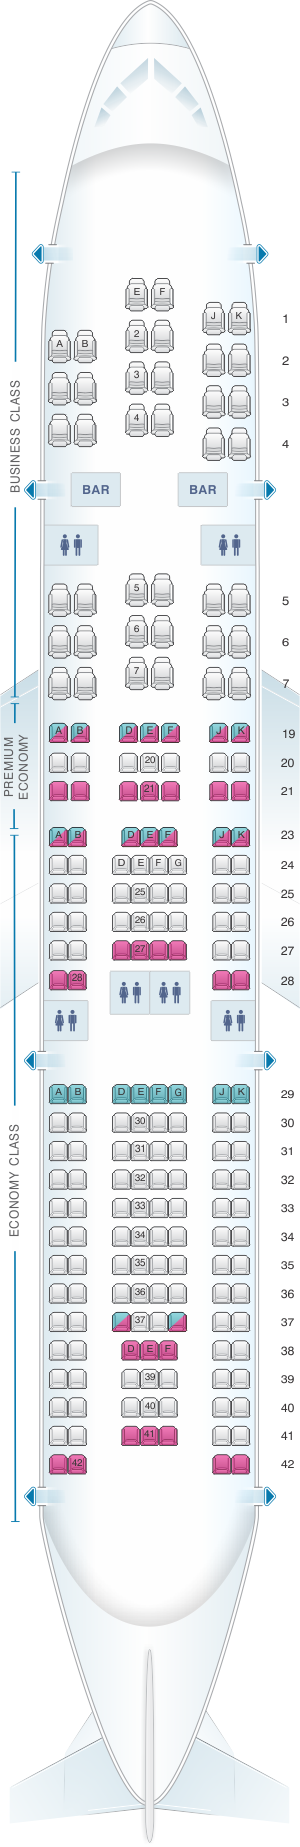 Plan de cabine air france airbus a330 200 long haul for Interieur d avion air france